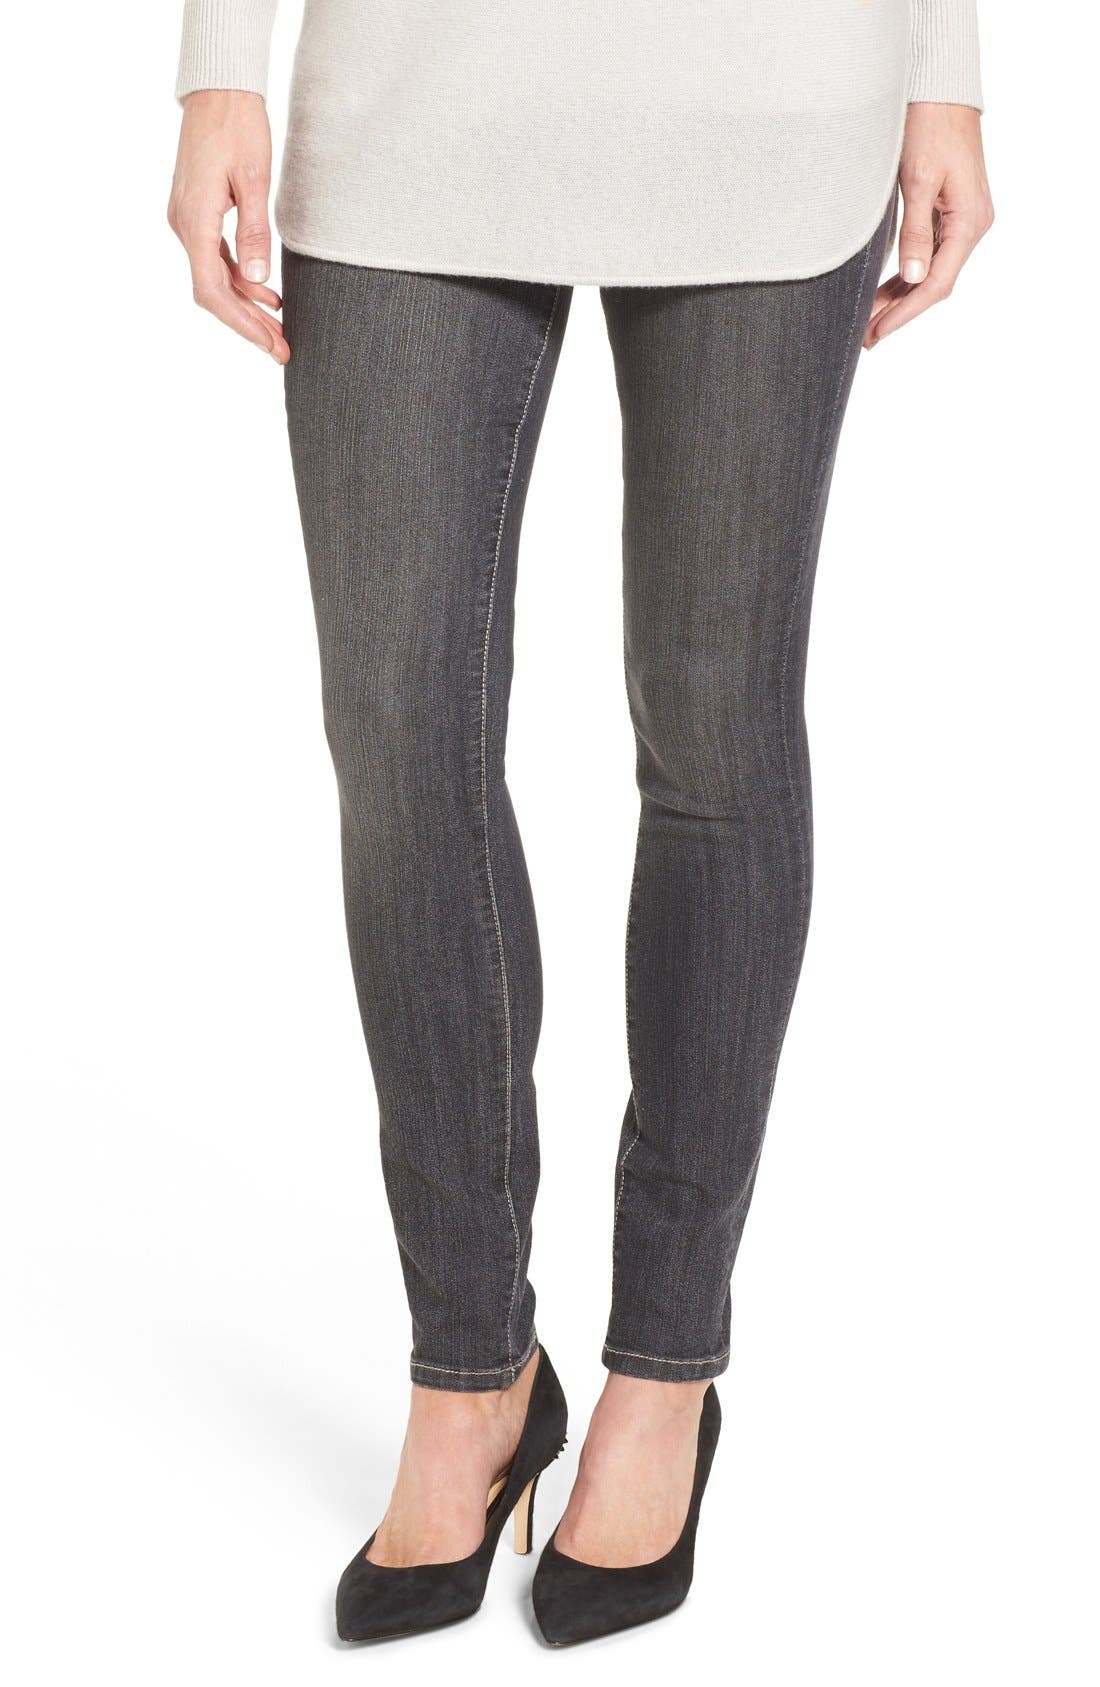 JAG JEANS Nora Pull-On Stretch Skinny Jeans